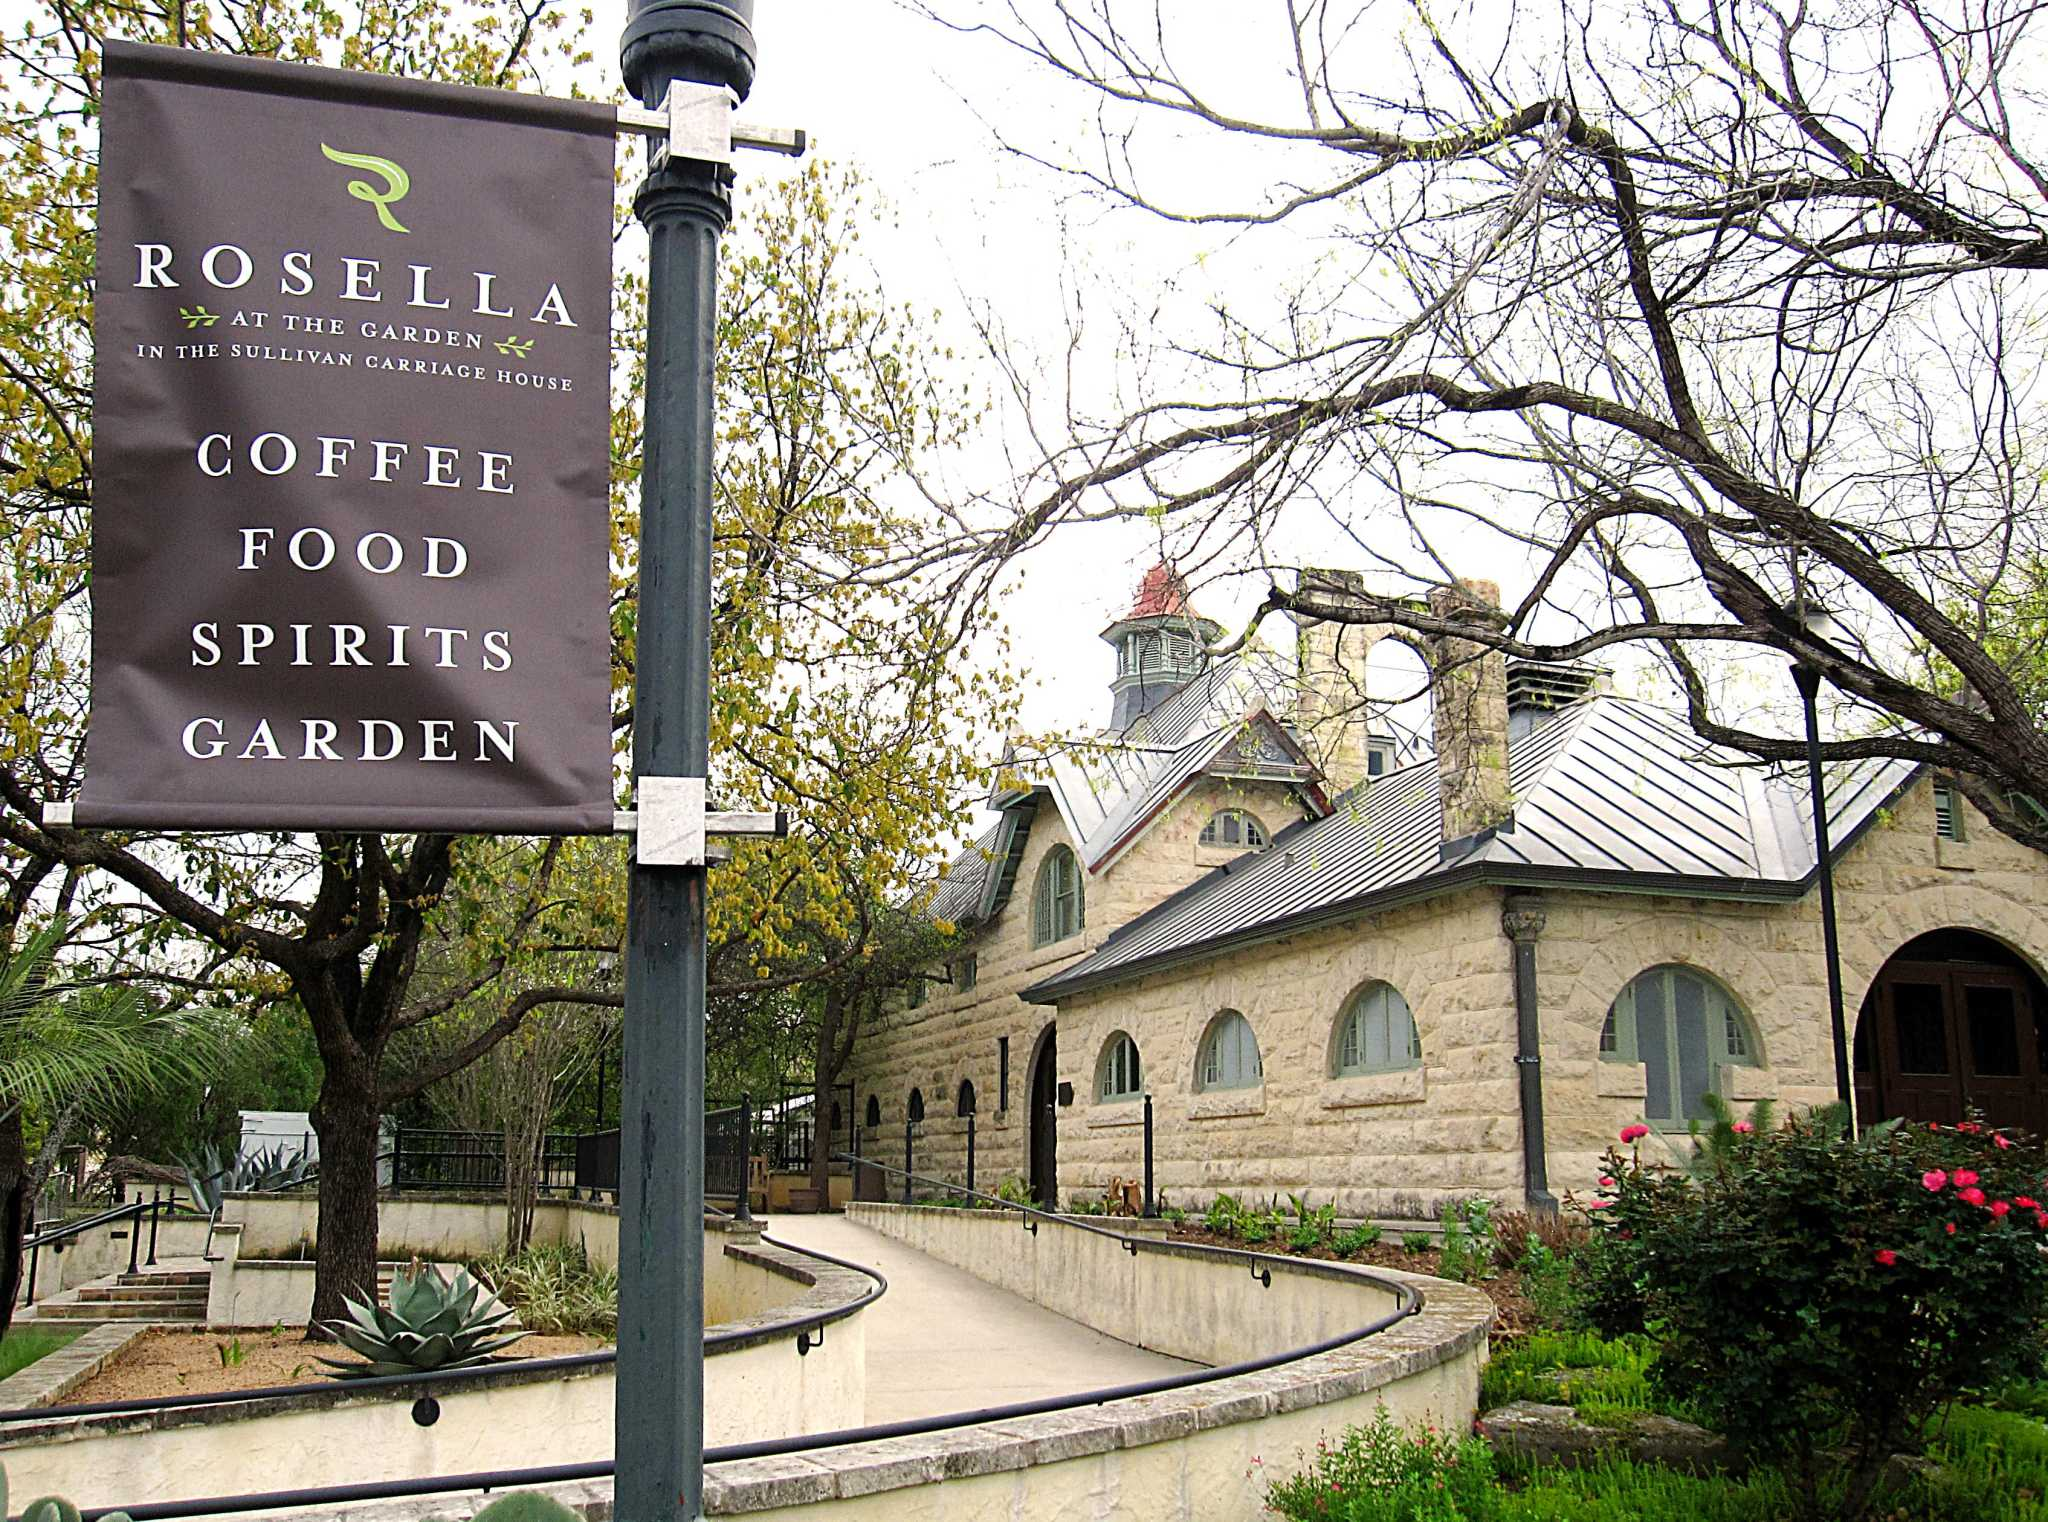 Coffee Garden Jobs Rosellas San Antonio Botanical Garden Cafe Opening